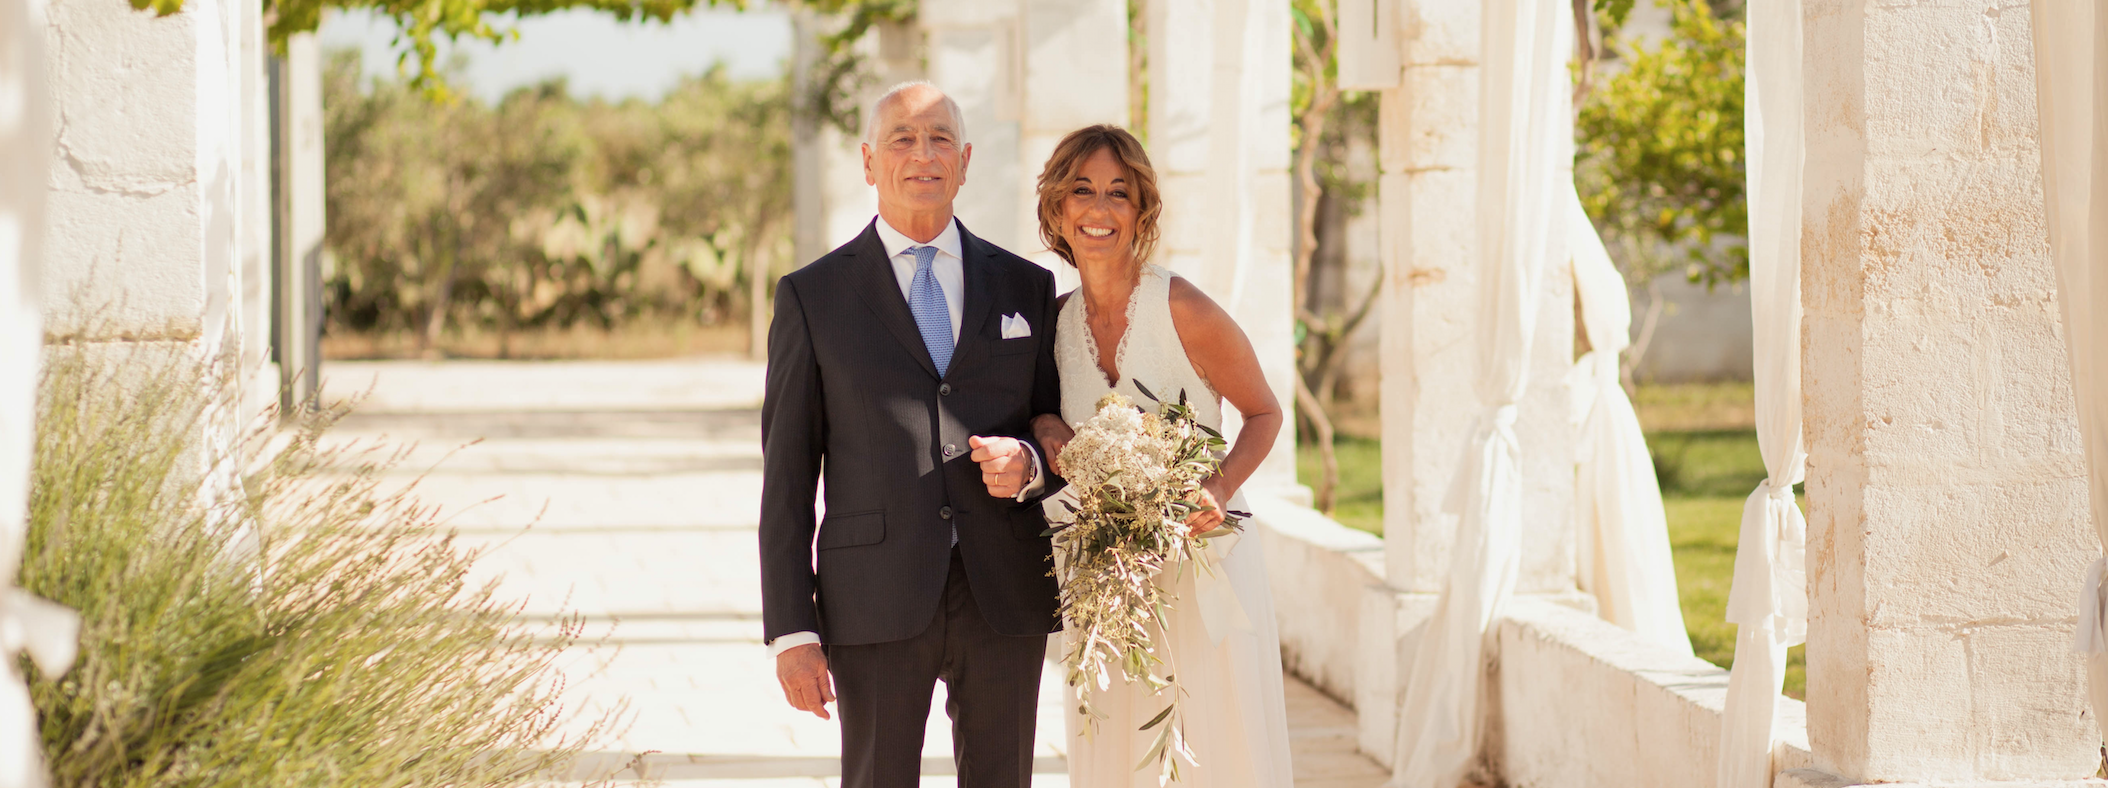 wedding-puglia